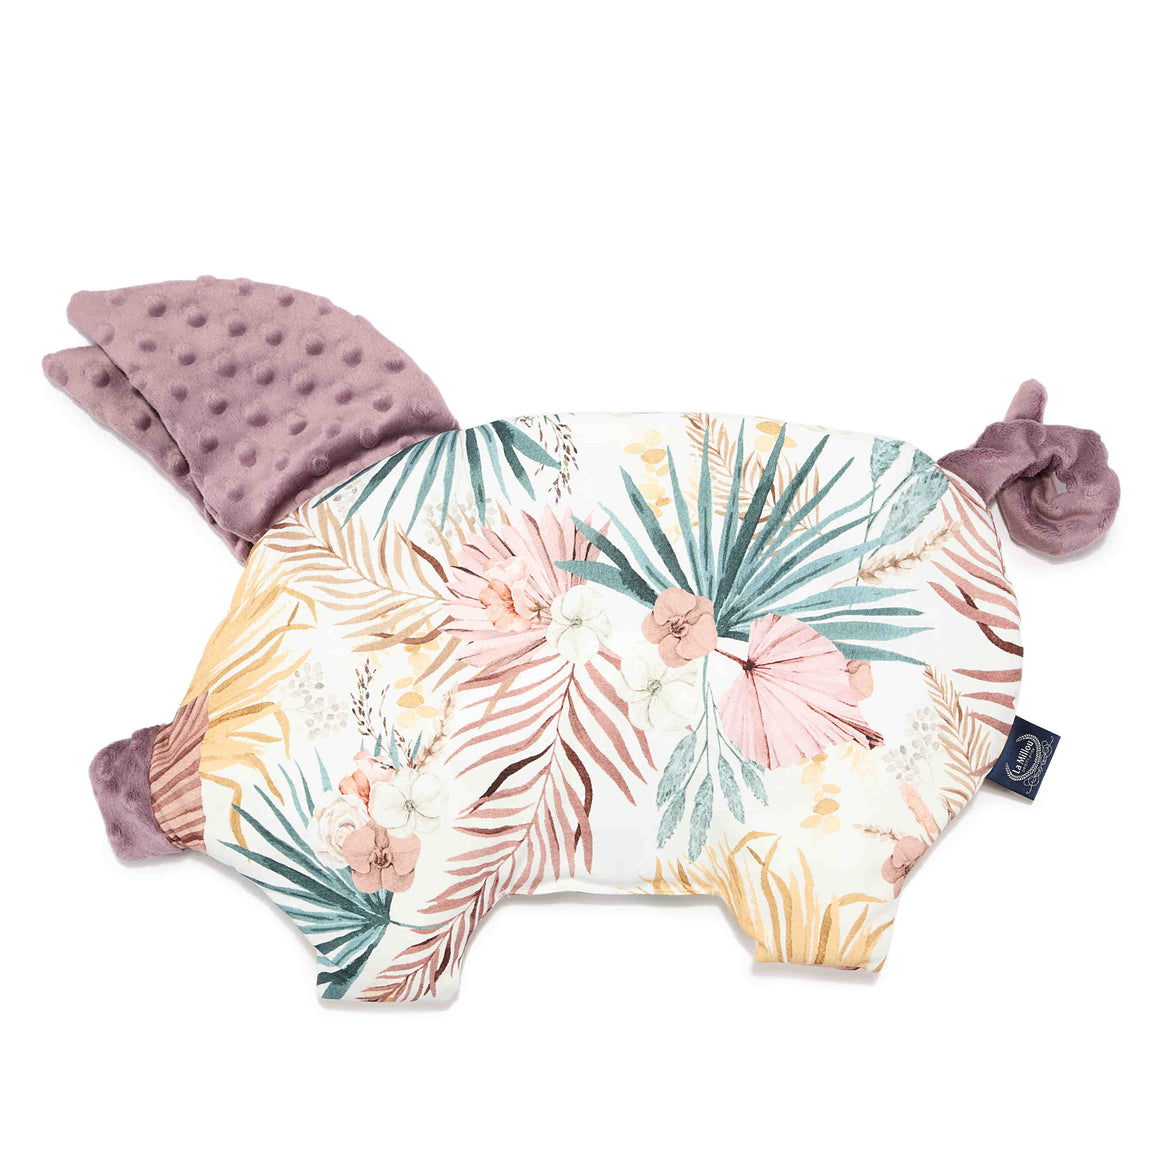 SLEEPY PIG baby pillow - Boho Palms Light | Lavender